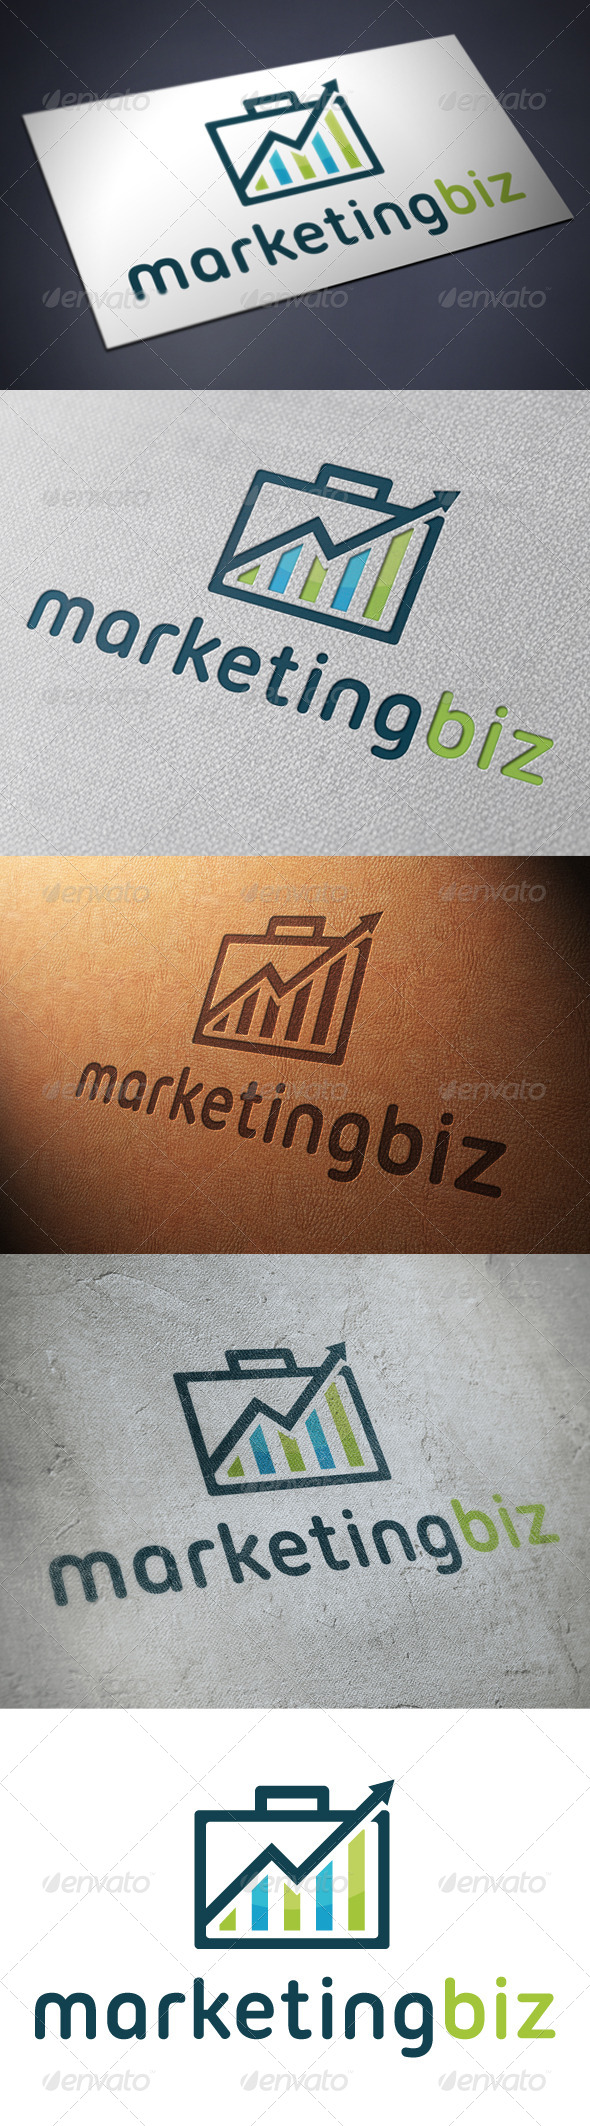 Marketing Business Logo Template